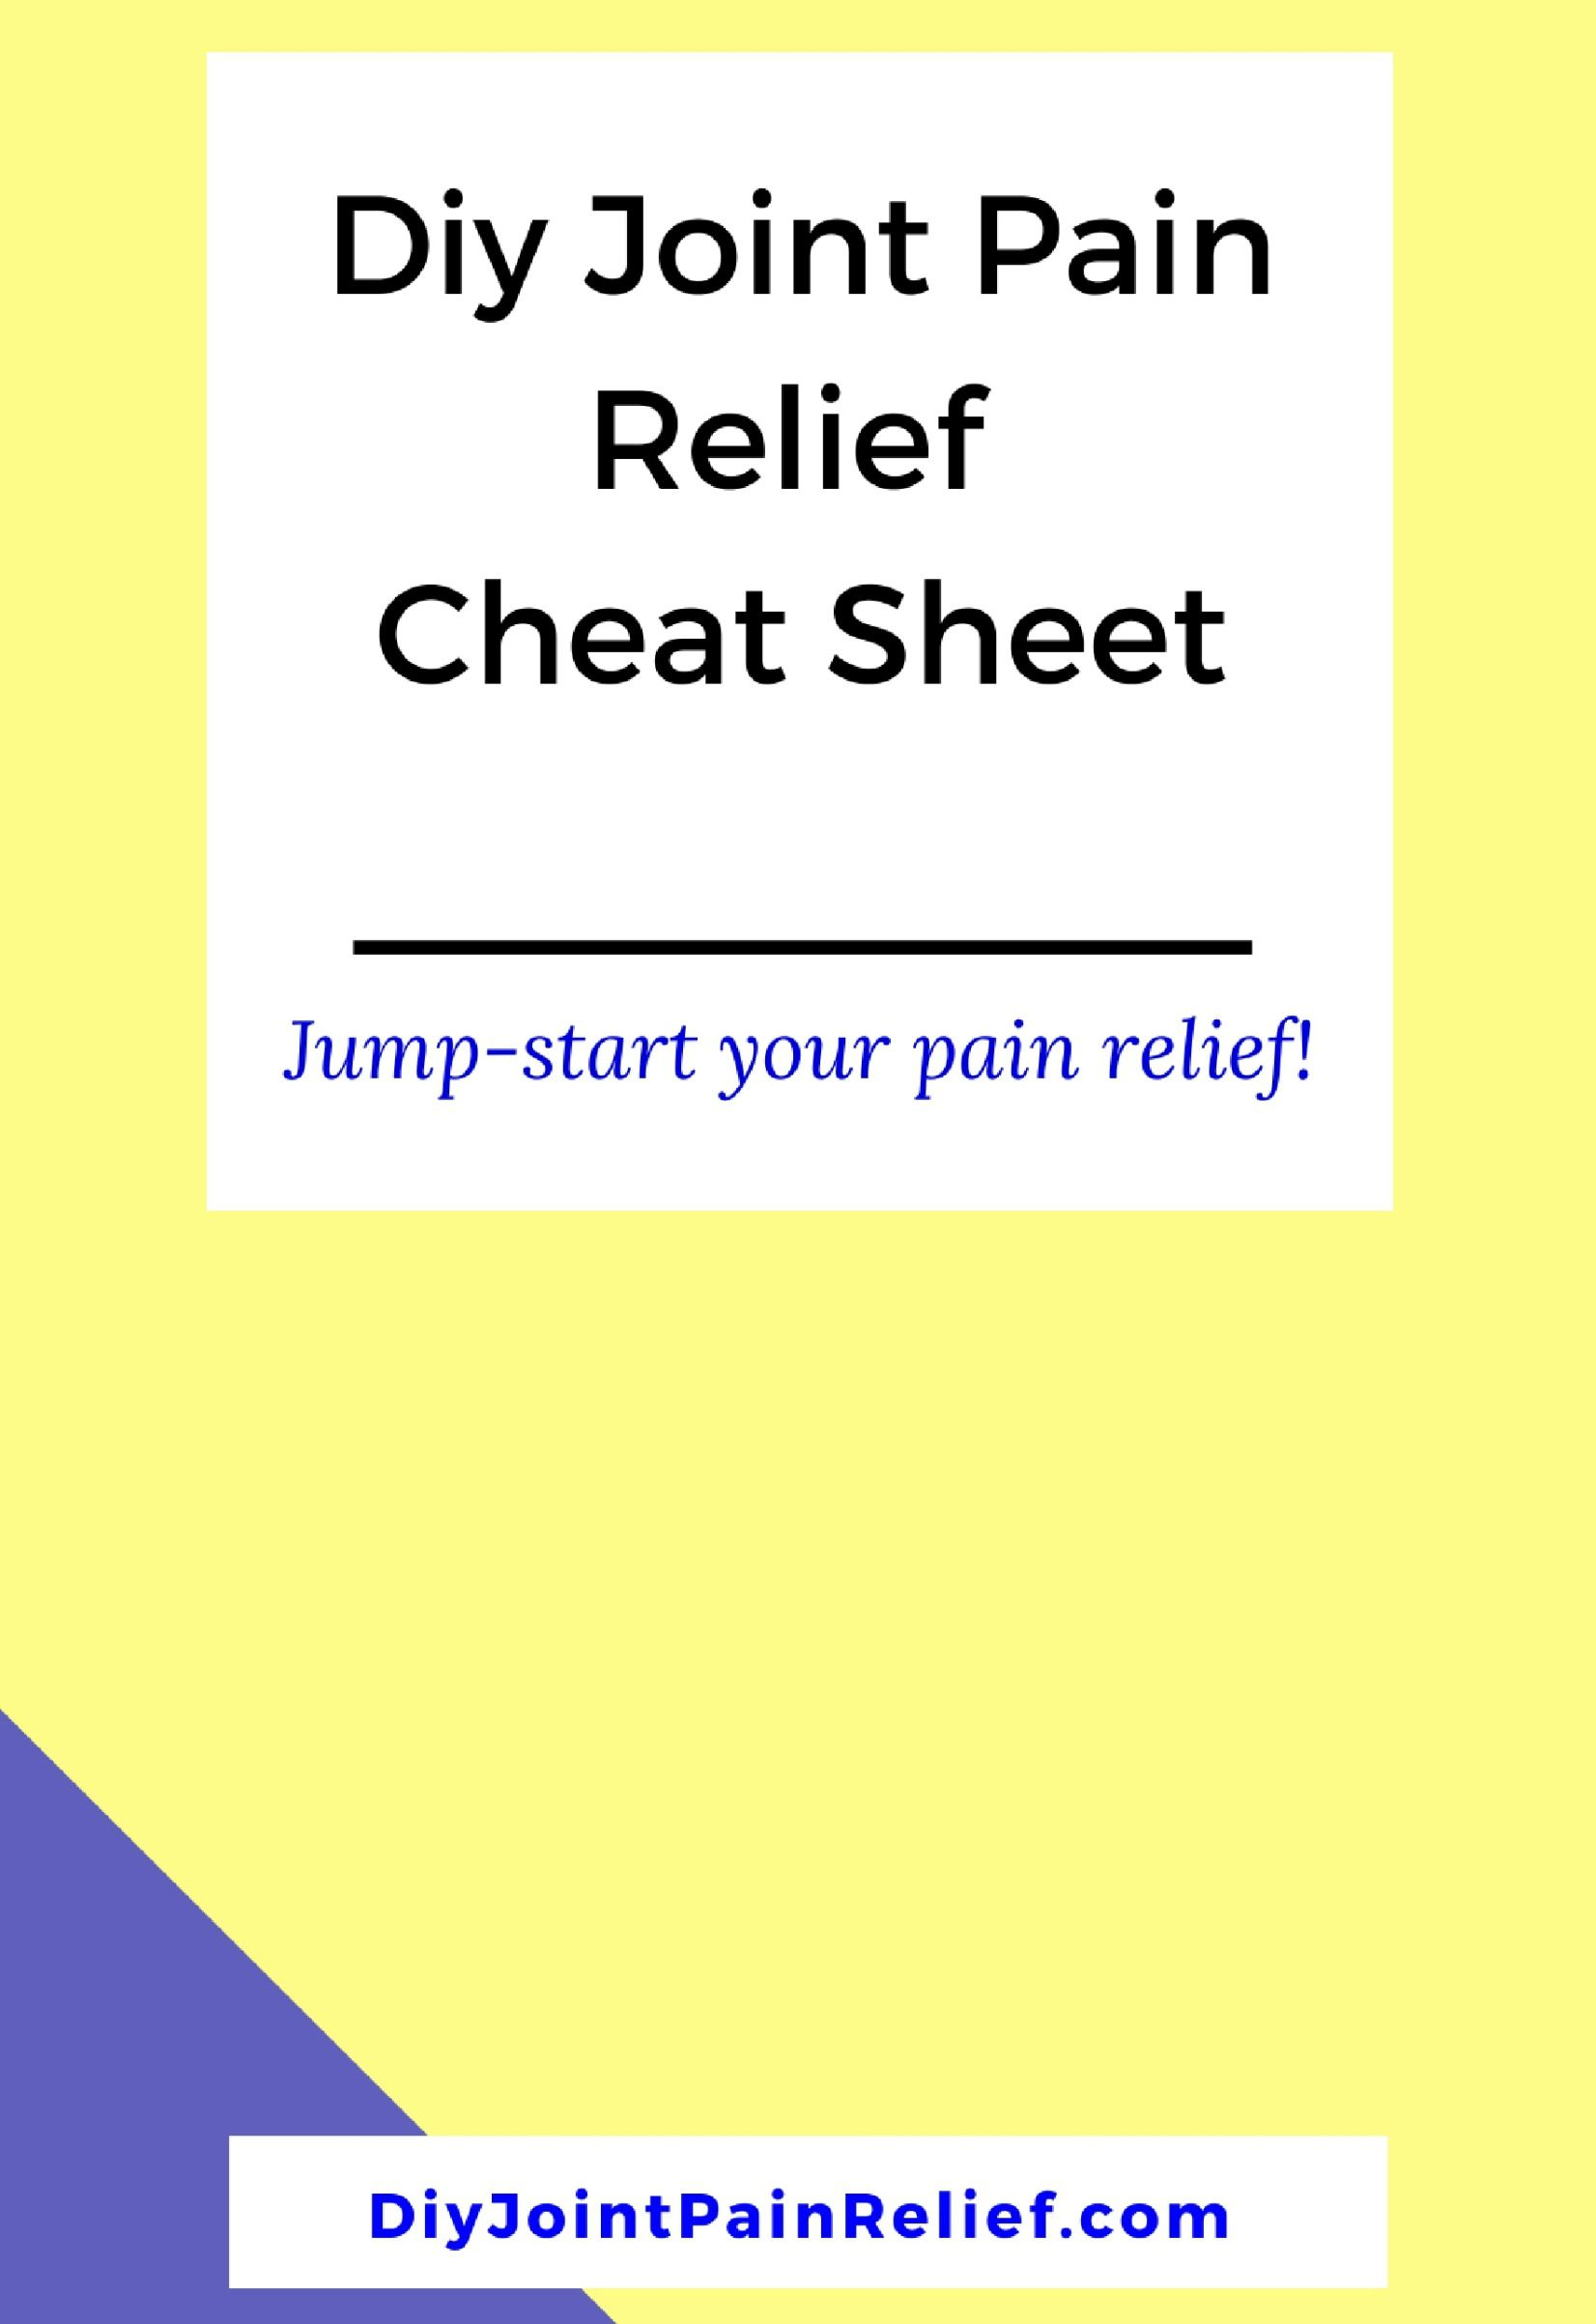 Sacroiliac joint pain relief pinterest pain relief neck pain this do it yourself sacroiliac joint pain relief treatment can be done by anyone free yourself from pain in 3 simple stepsat you can do yourselfr solutioingenieria